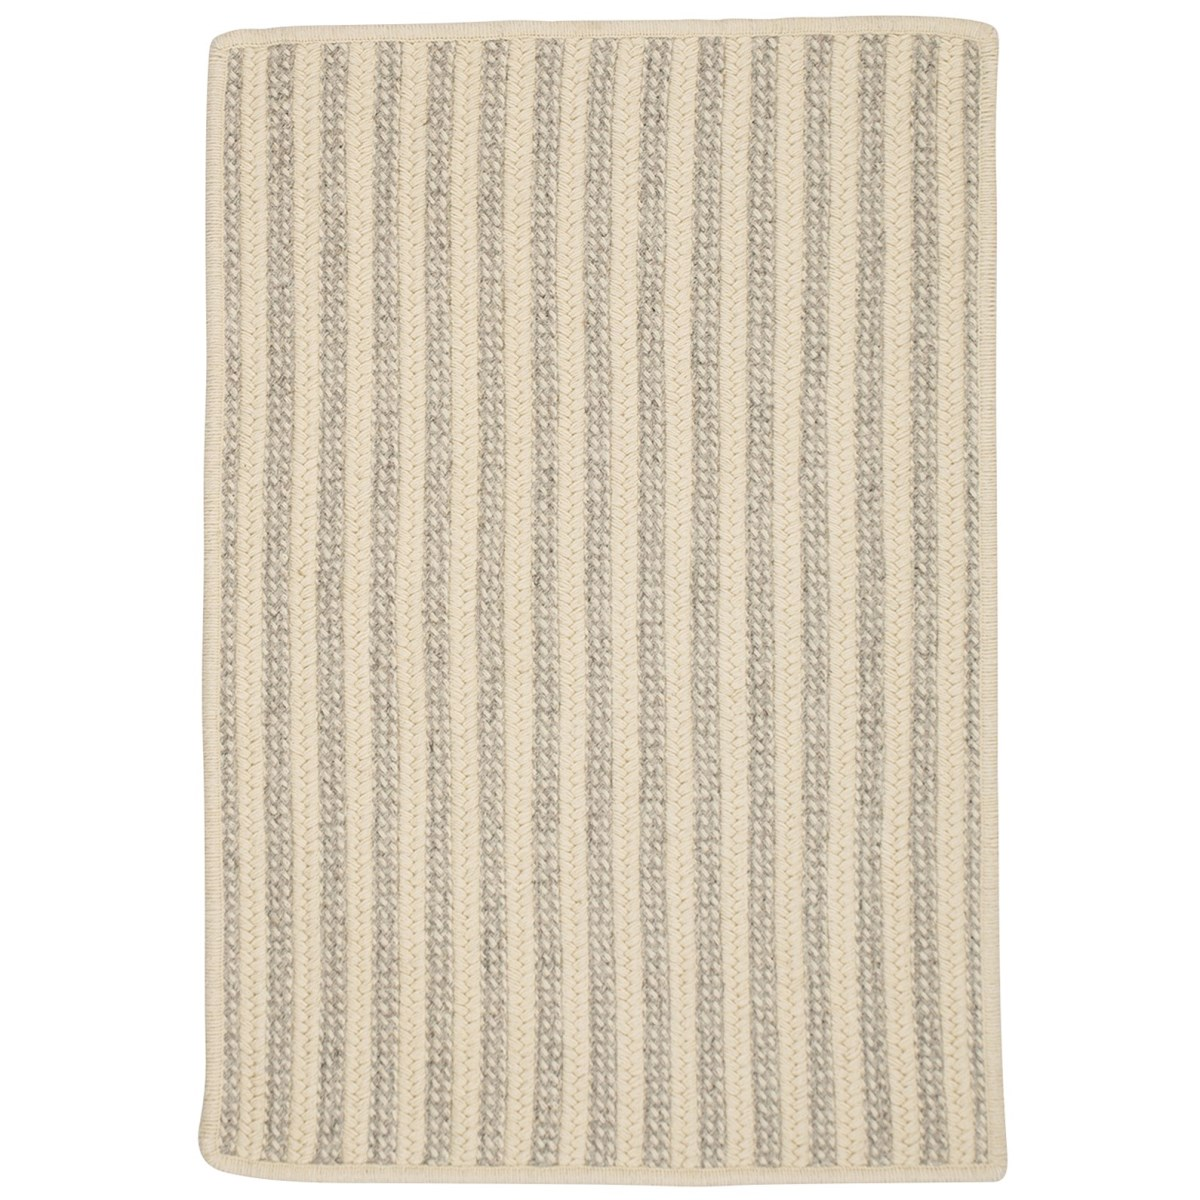 Woodland Light Gray Wool Braided Rectangular Rugs